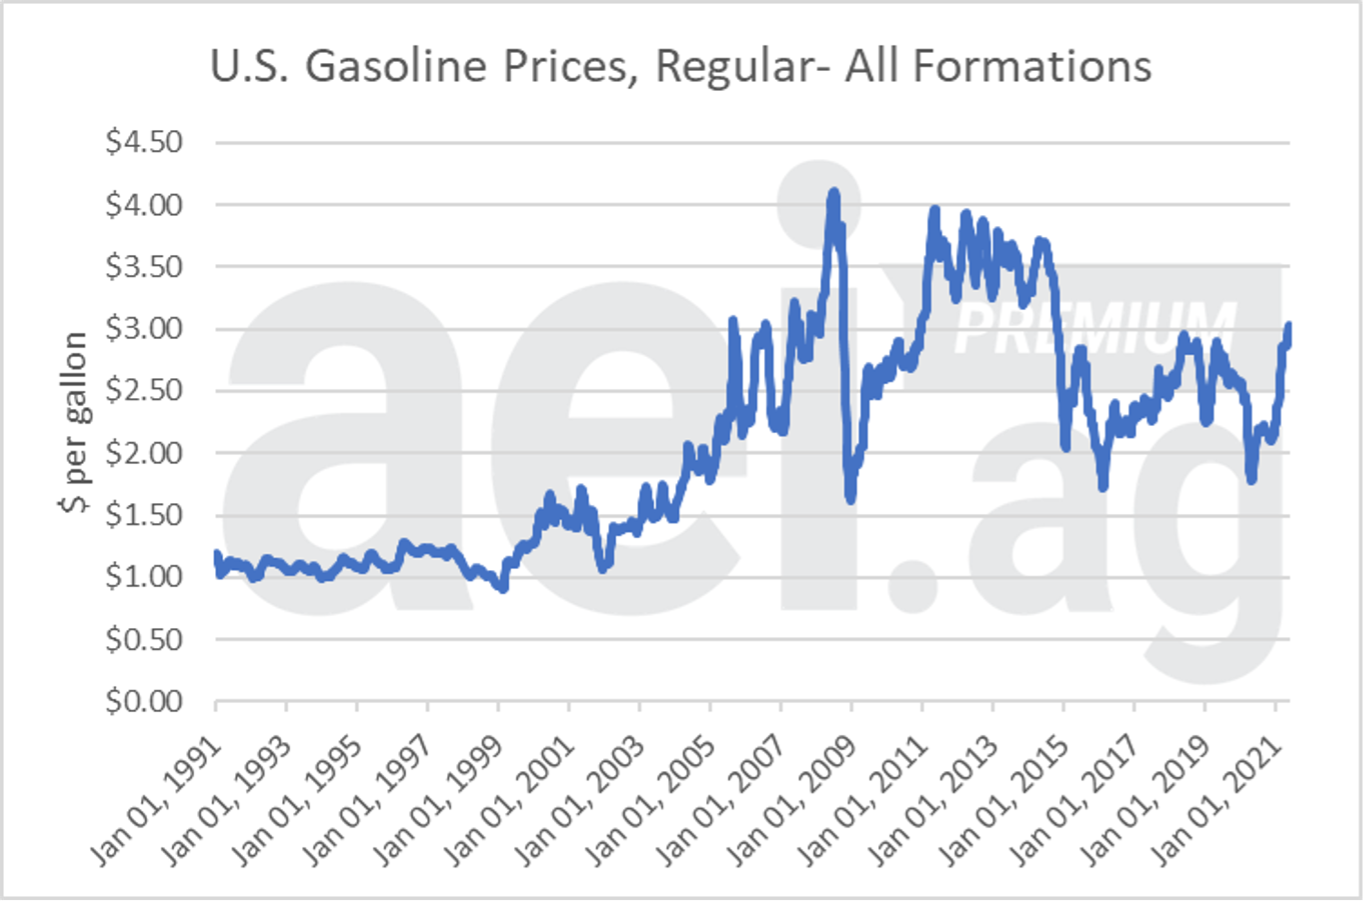 Figure 3. U.S. Gasoline Prices, Regular- All Formations. 1991- May 2021. Data Source: US EIA.